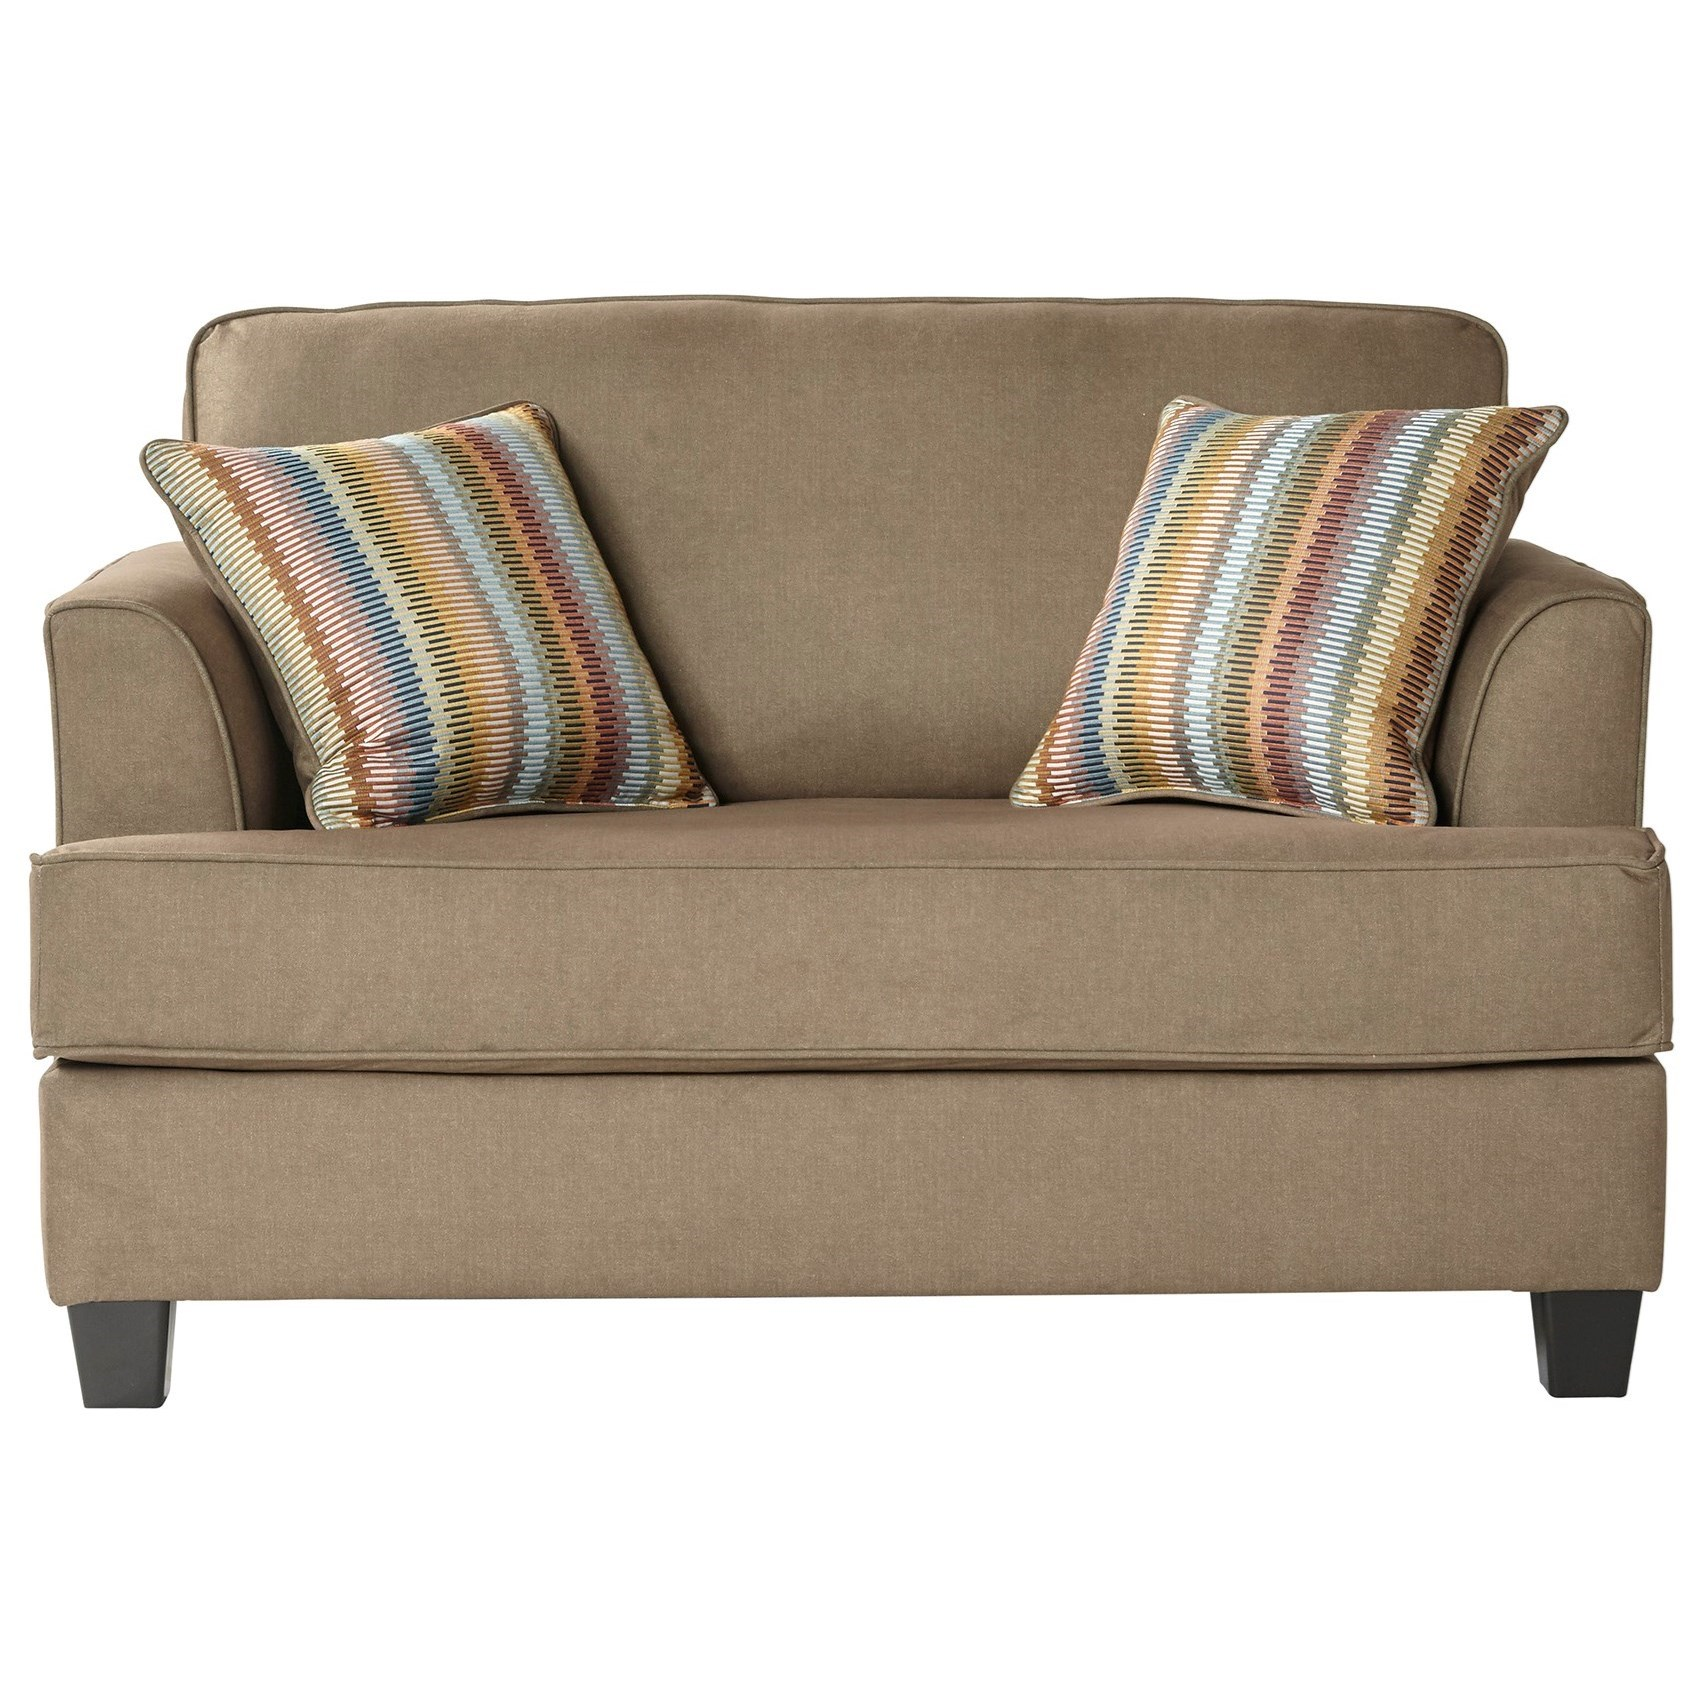 5650 Twin Sleeper Oversize Chair by Serta Upholstery by Hughes Furniture at Rooms for Less